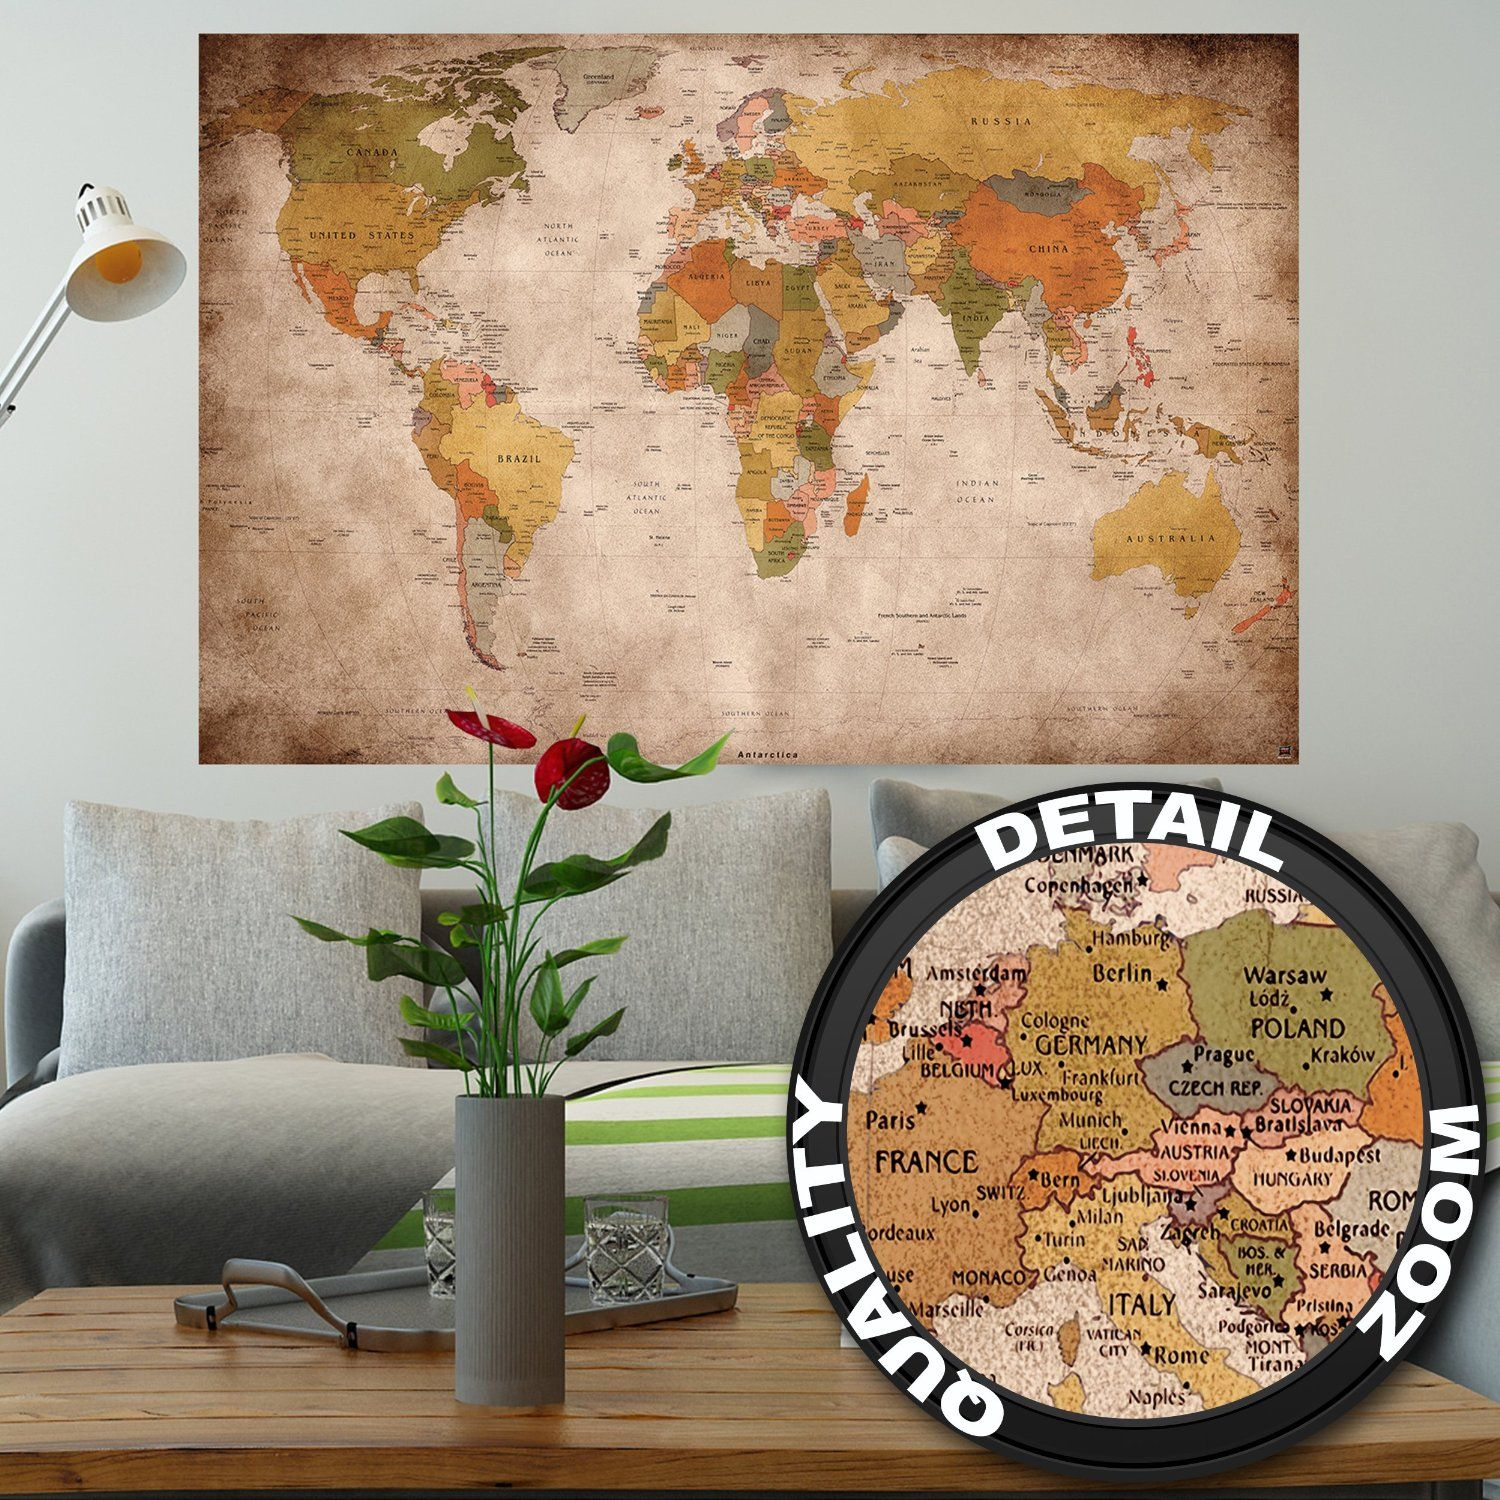 Great art xxl poster world map photo wallpaper vintage retro motif great art xxl poster world map photo wallpaper vintage retro motif xxl world map mural gumiabroncs Choice Image